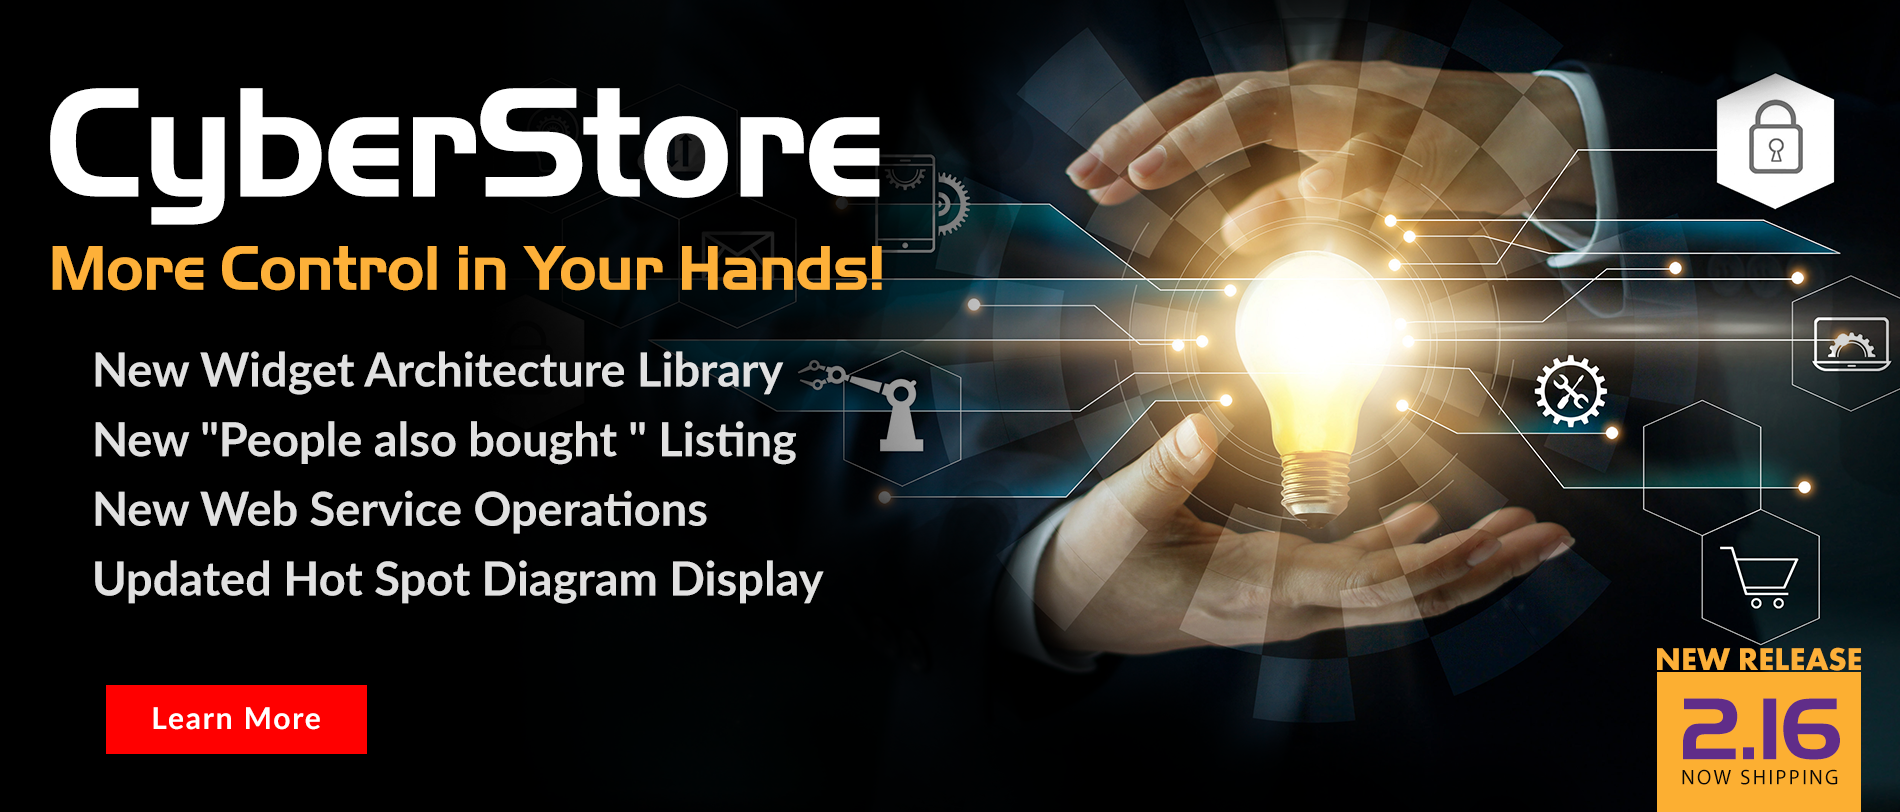 Feel the Power of CyberStore version 2.16  More Control In Your Hands